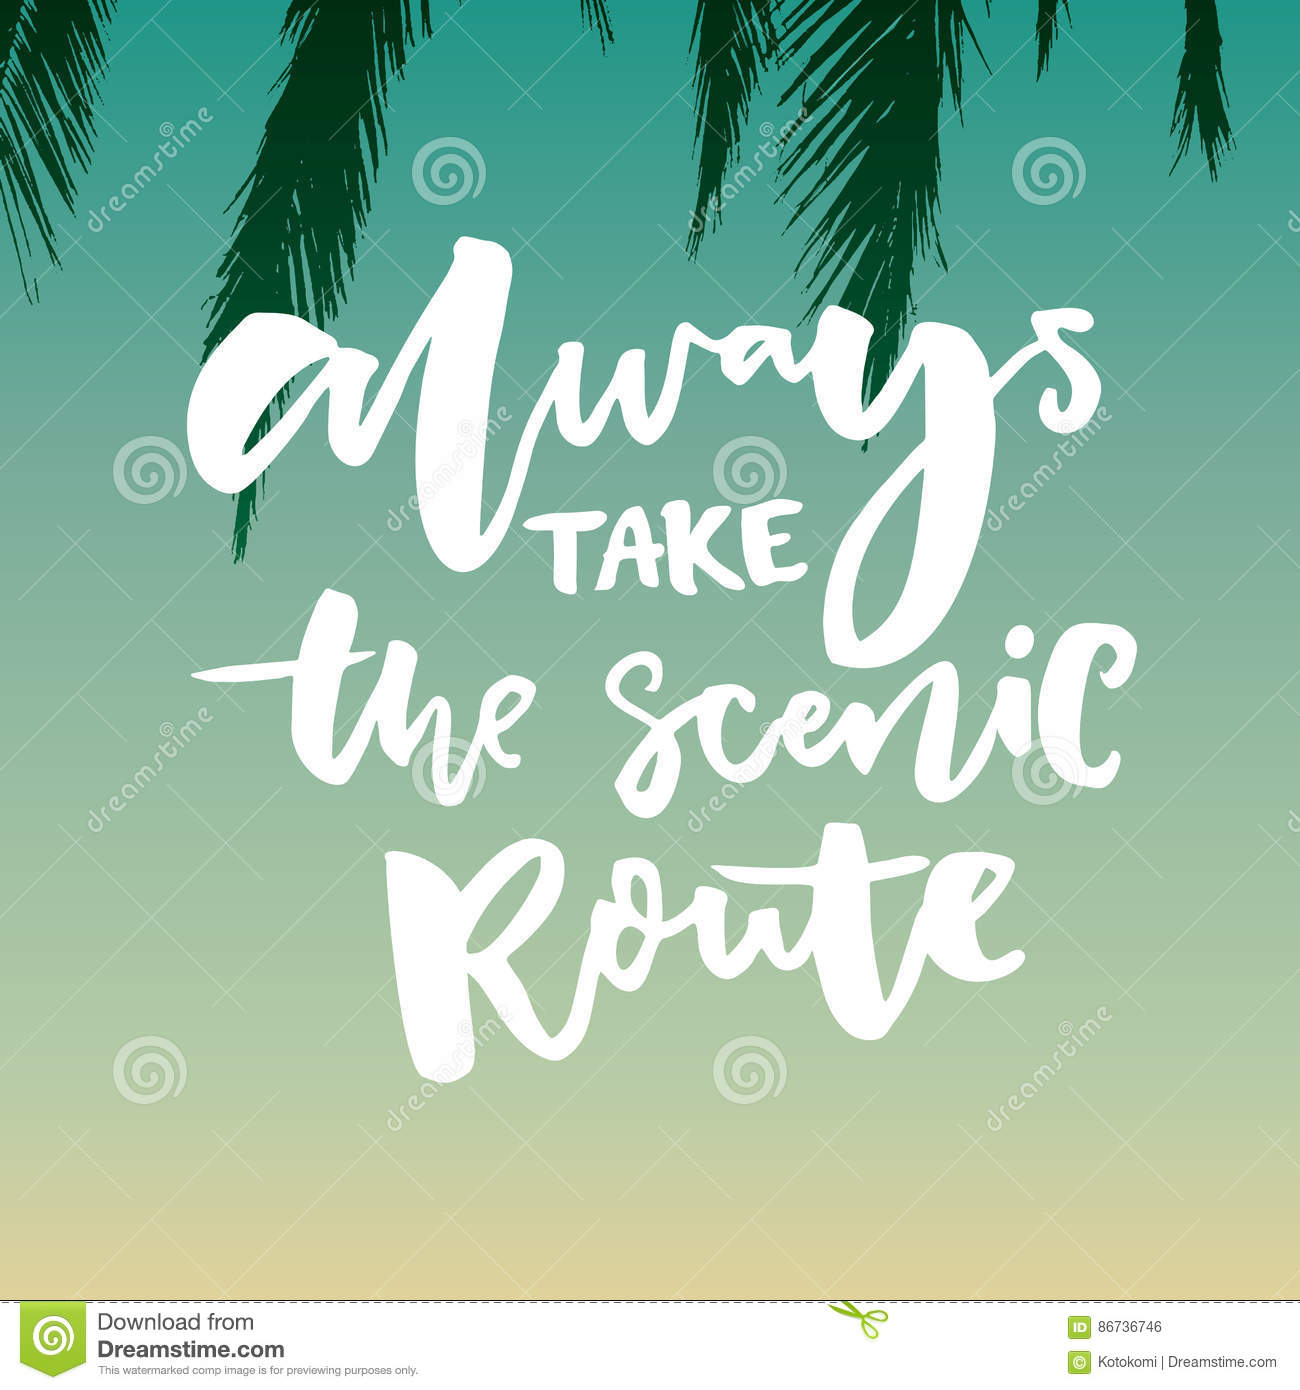 Scenic quotes daily inspirational quotations and sayings on - Gradient Inspirational Lettering Life Quote Route Saying Scenic